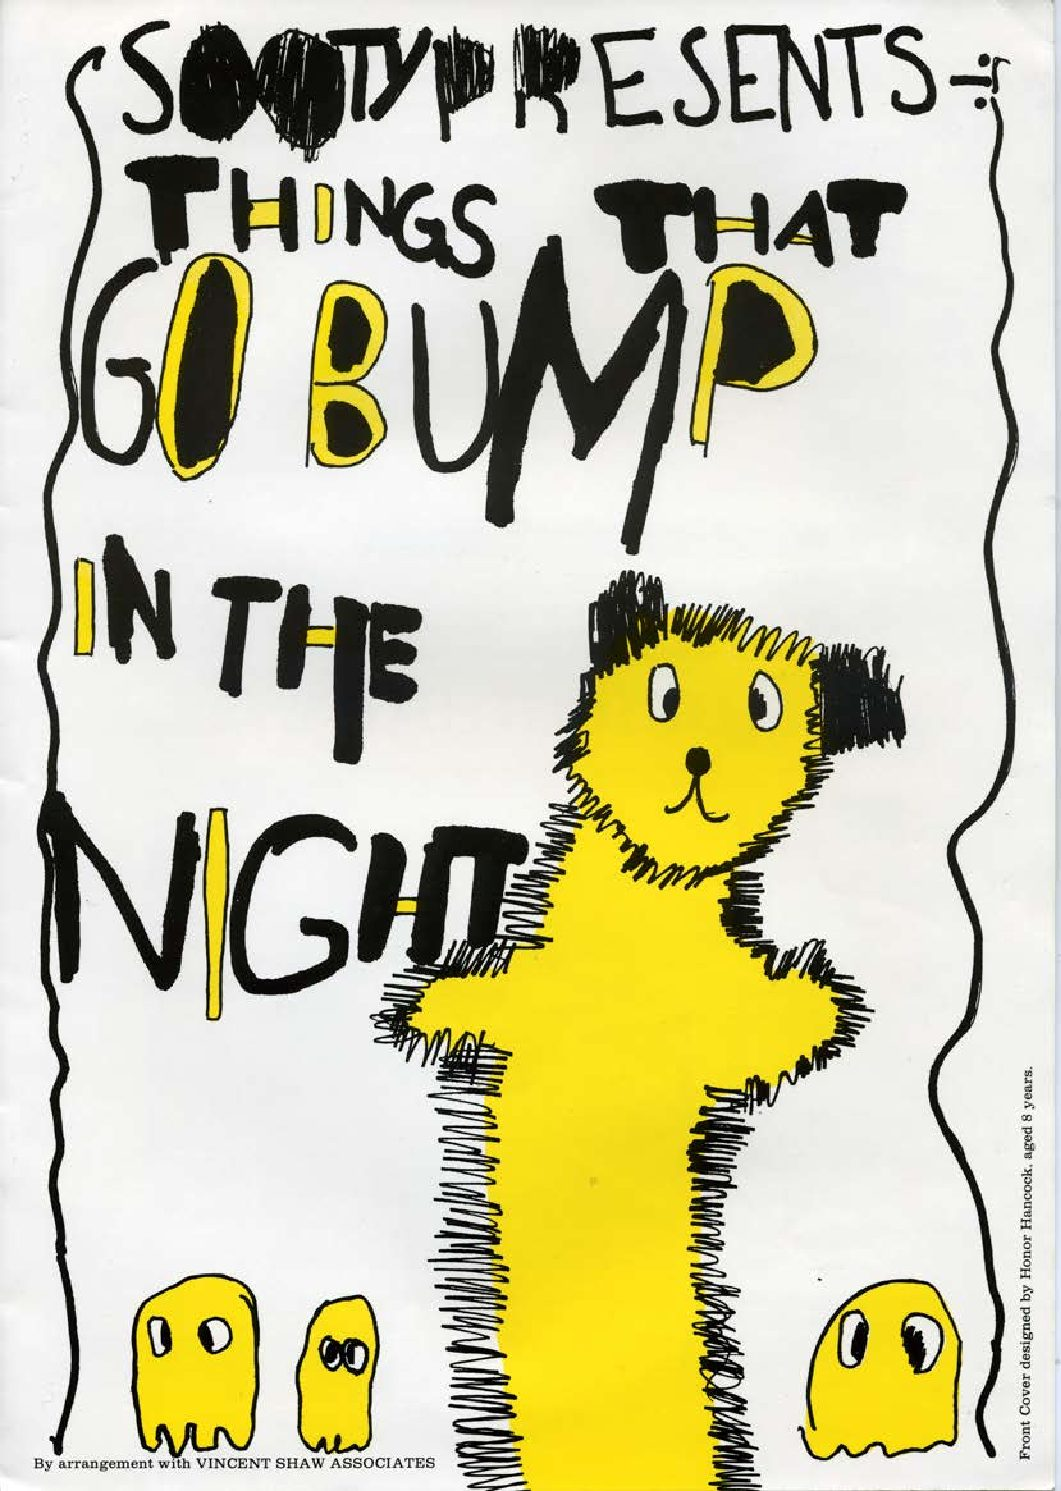 Programme for 'Sooty Presents 'Things that go Bump in the Night'